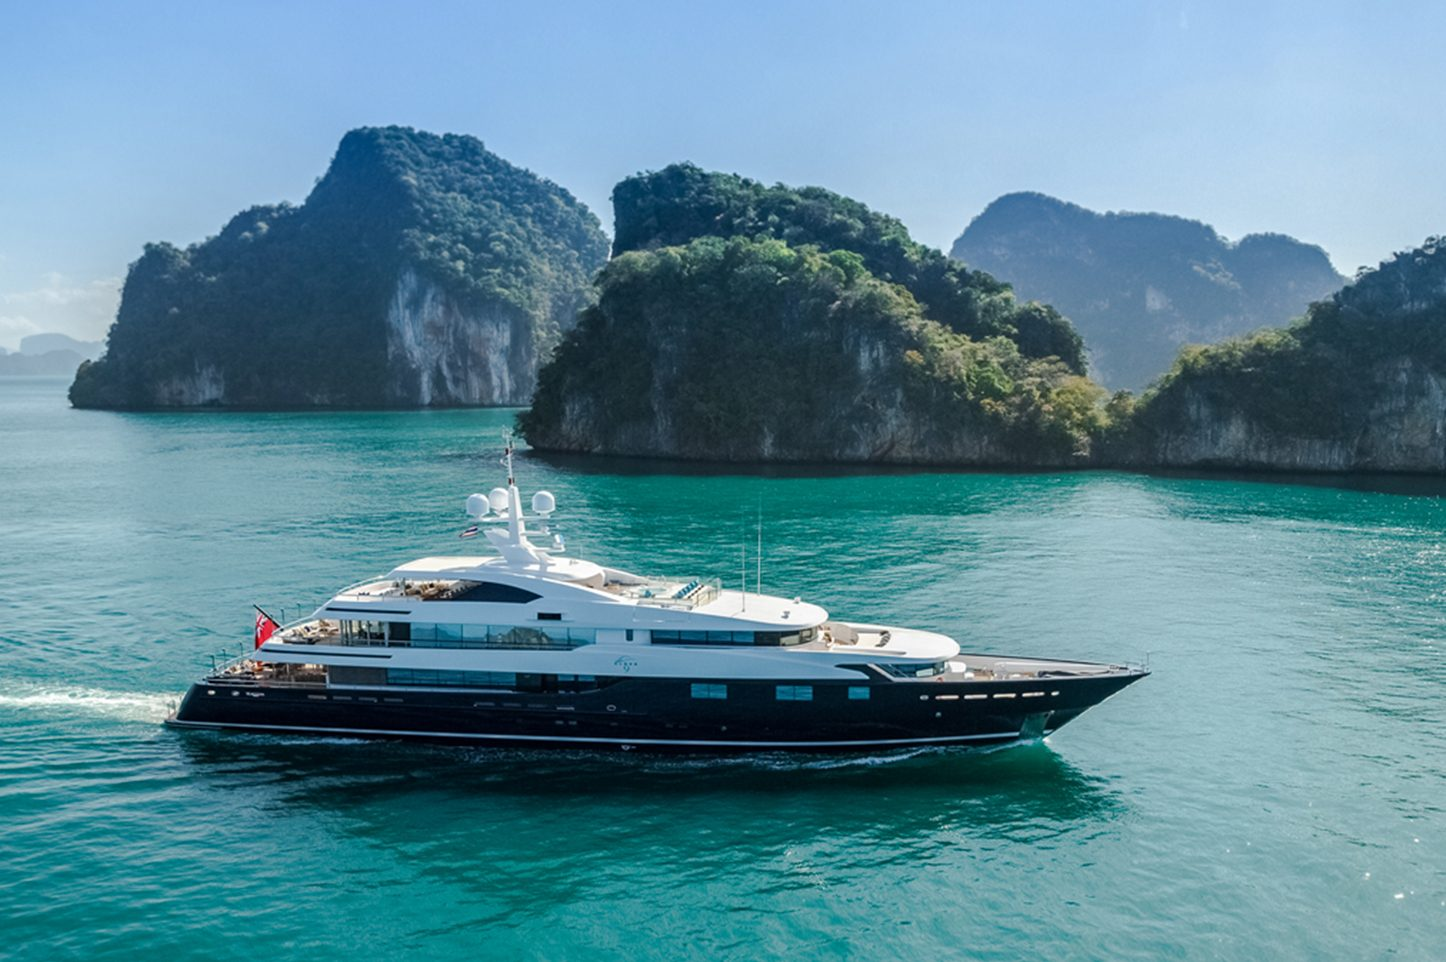 Yacht Charter service